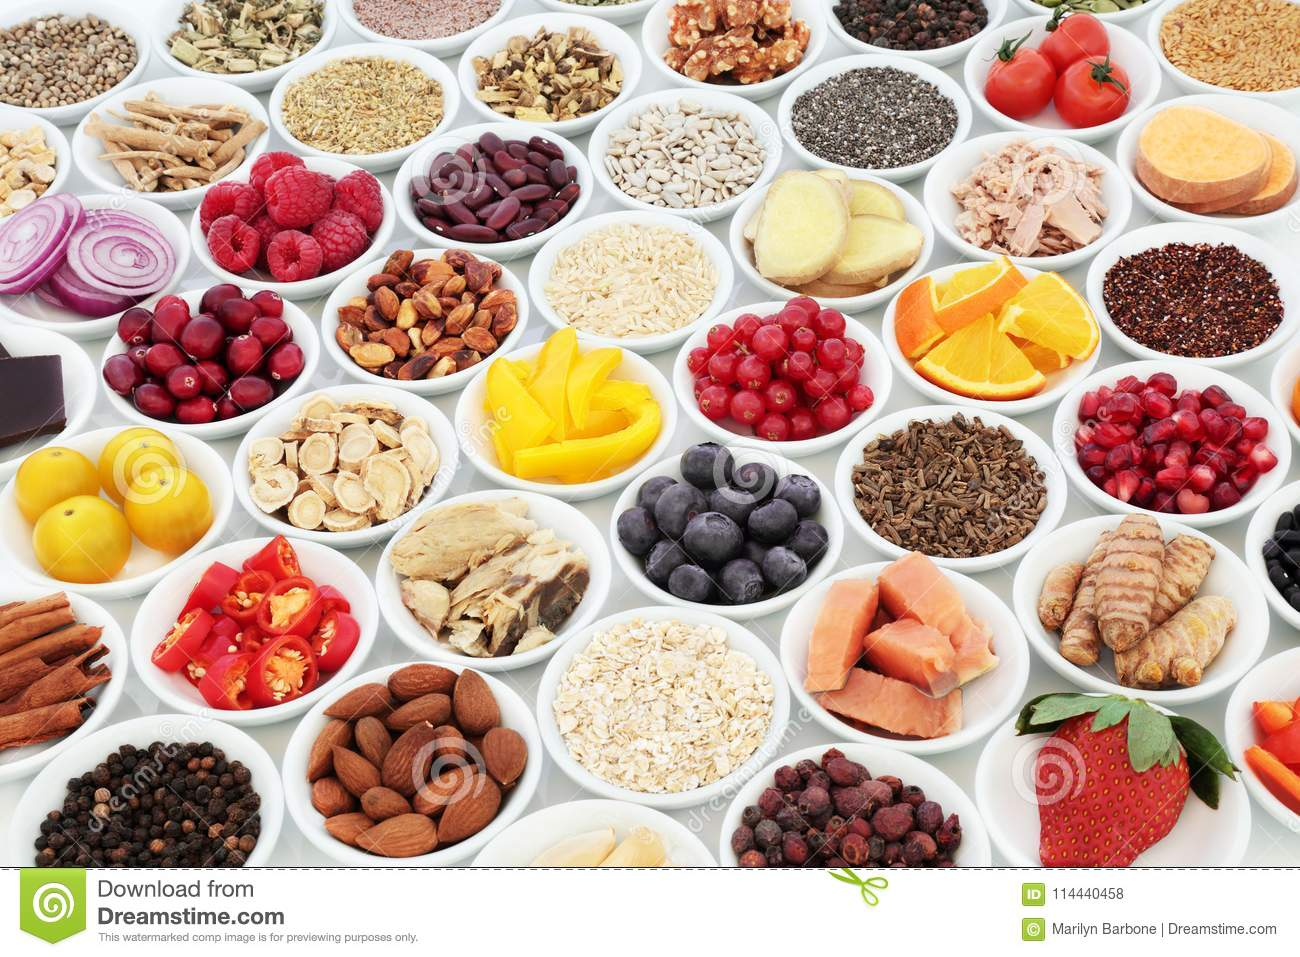 Healthy Food For Good Heart Health Stock Photo Image Of Flat Eating 114440458